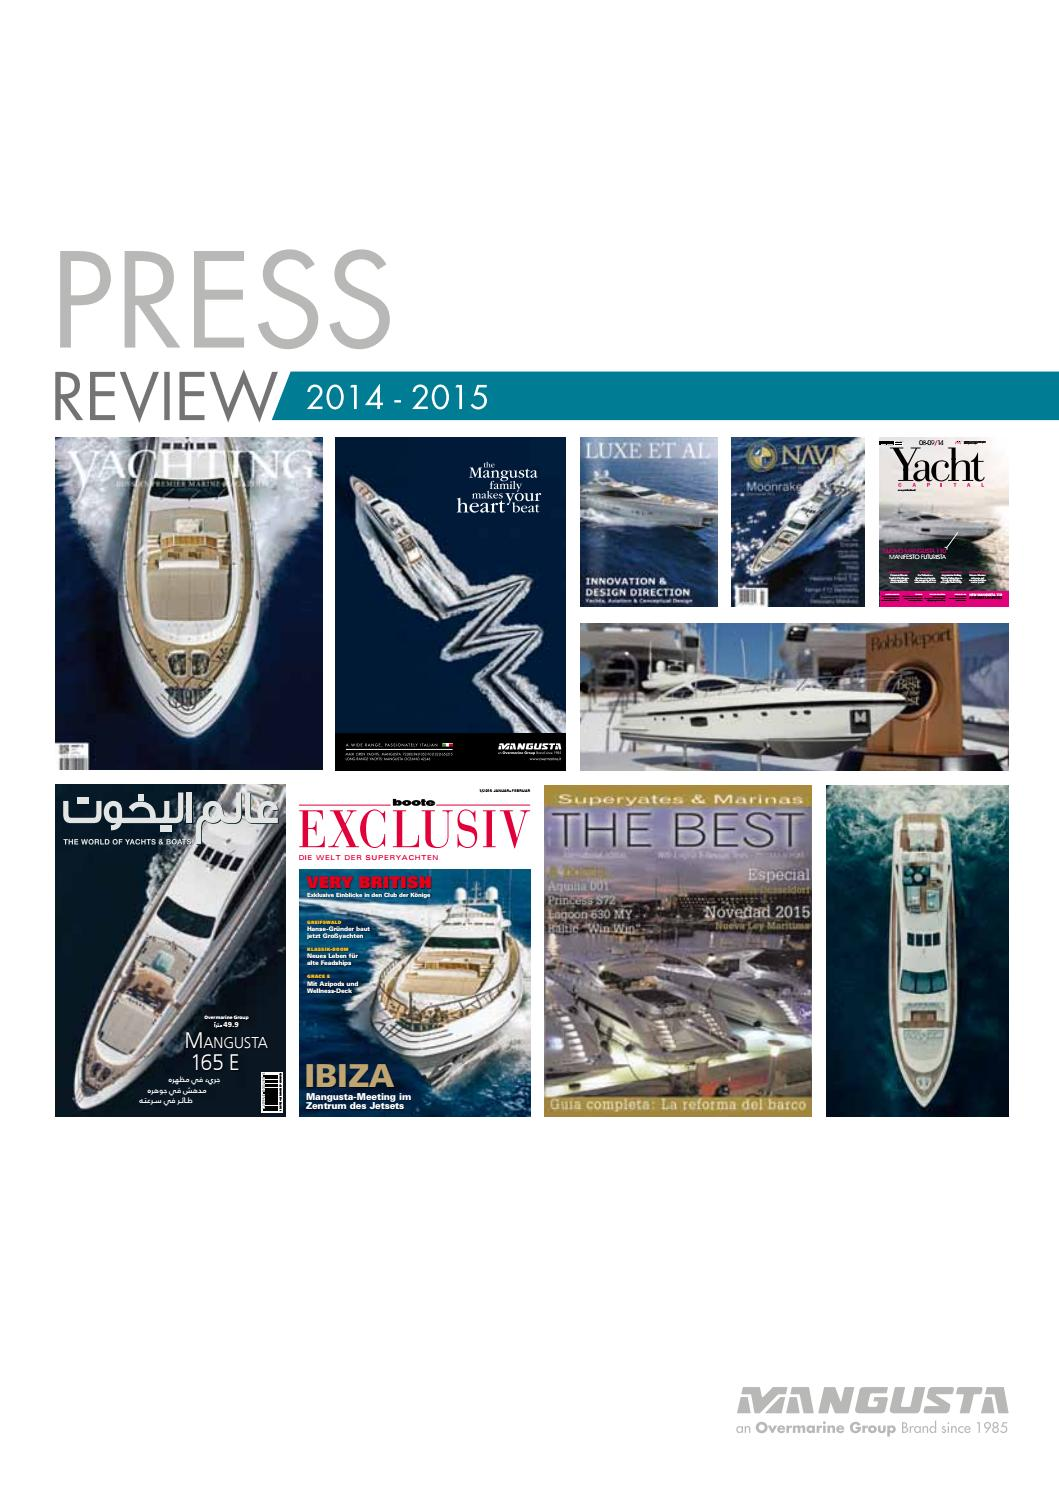 5612eb094ae44 Overmarine Group Press Review 2015 by Mangusta yachts - issuu